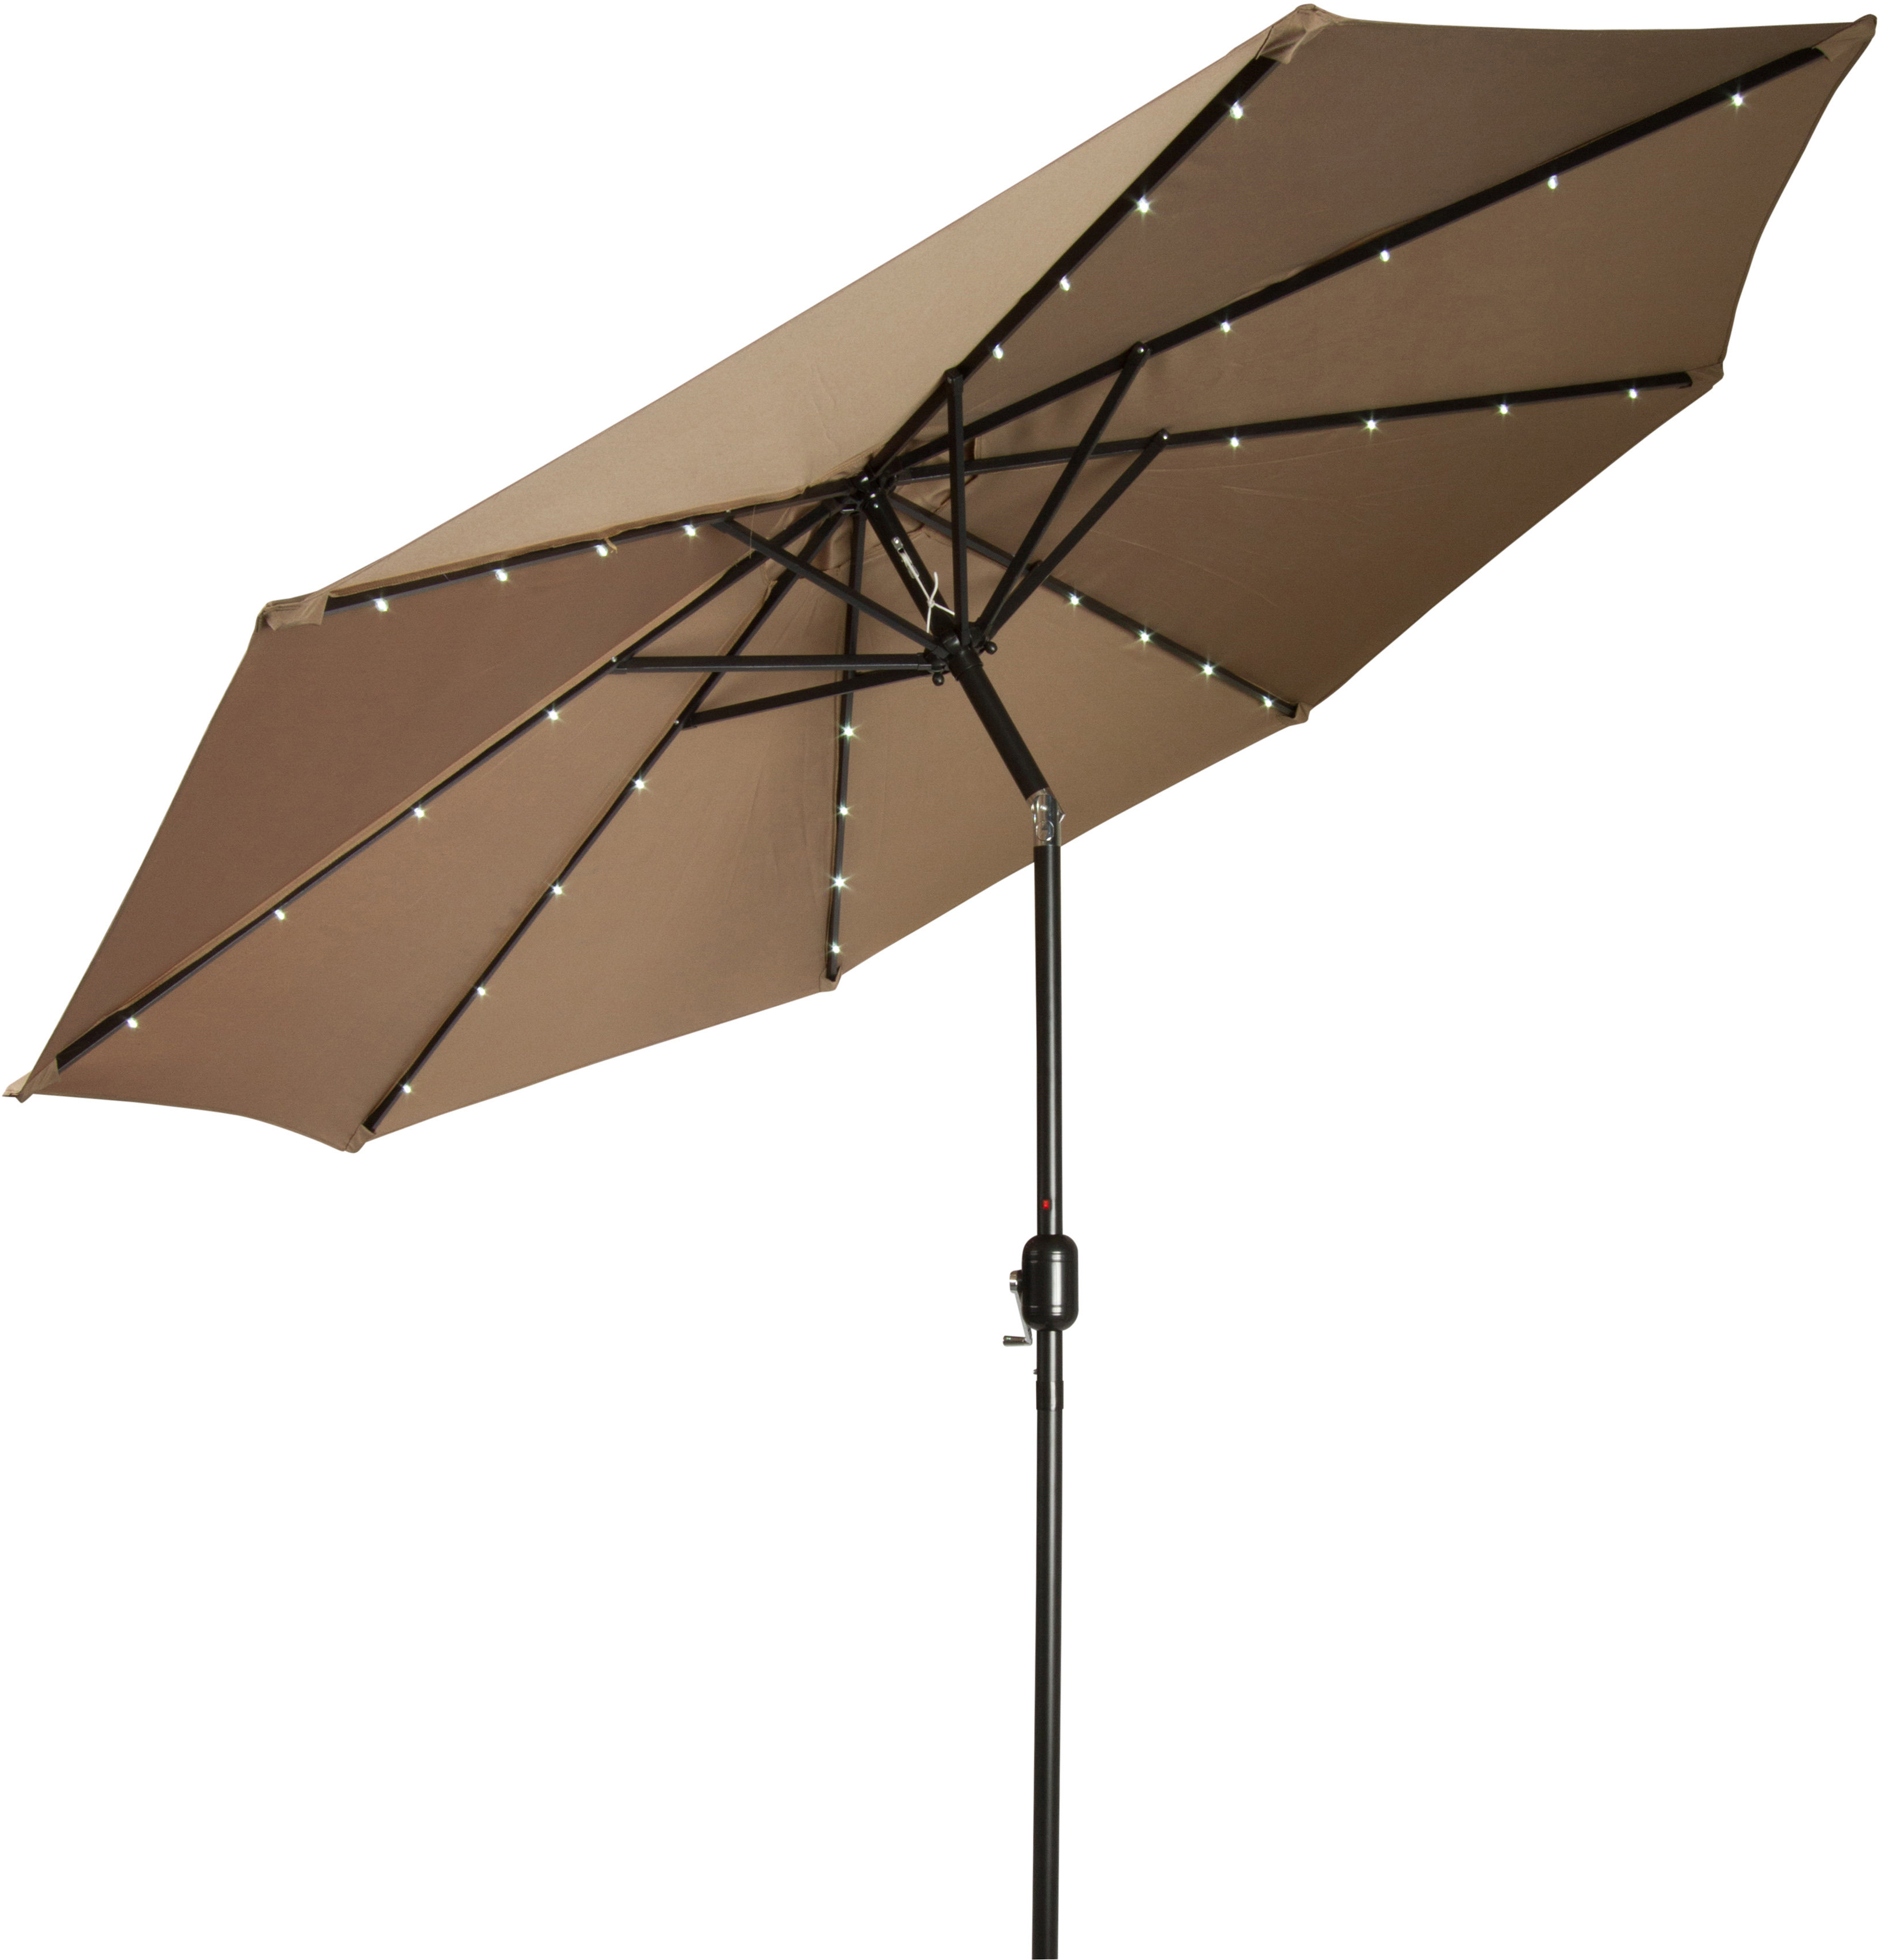 Woll 9' Lighted Market Umbrella With Regard To Preferred Cardine Market Umbrellas (View 19 of 20)